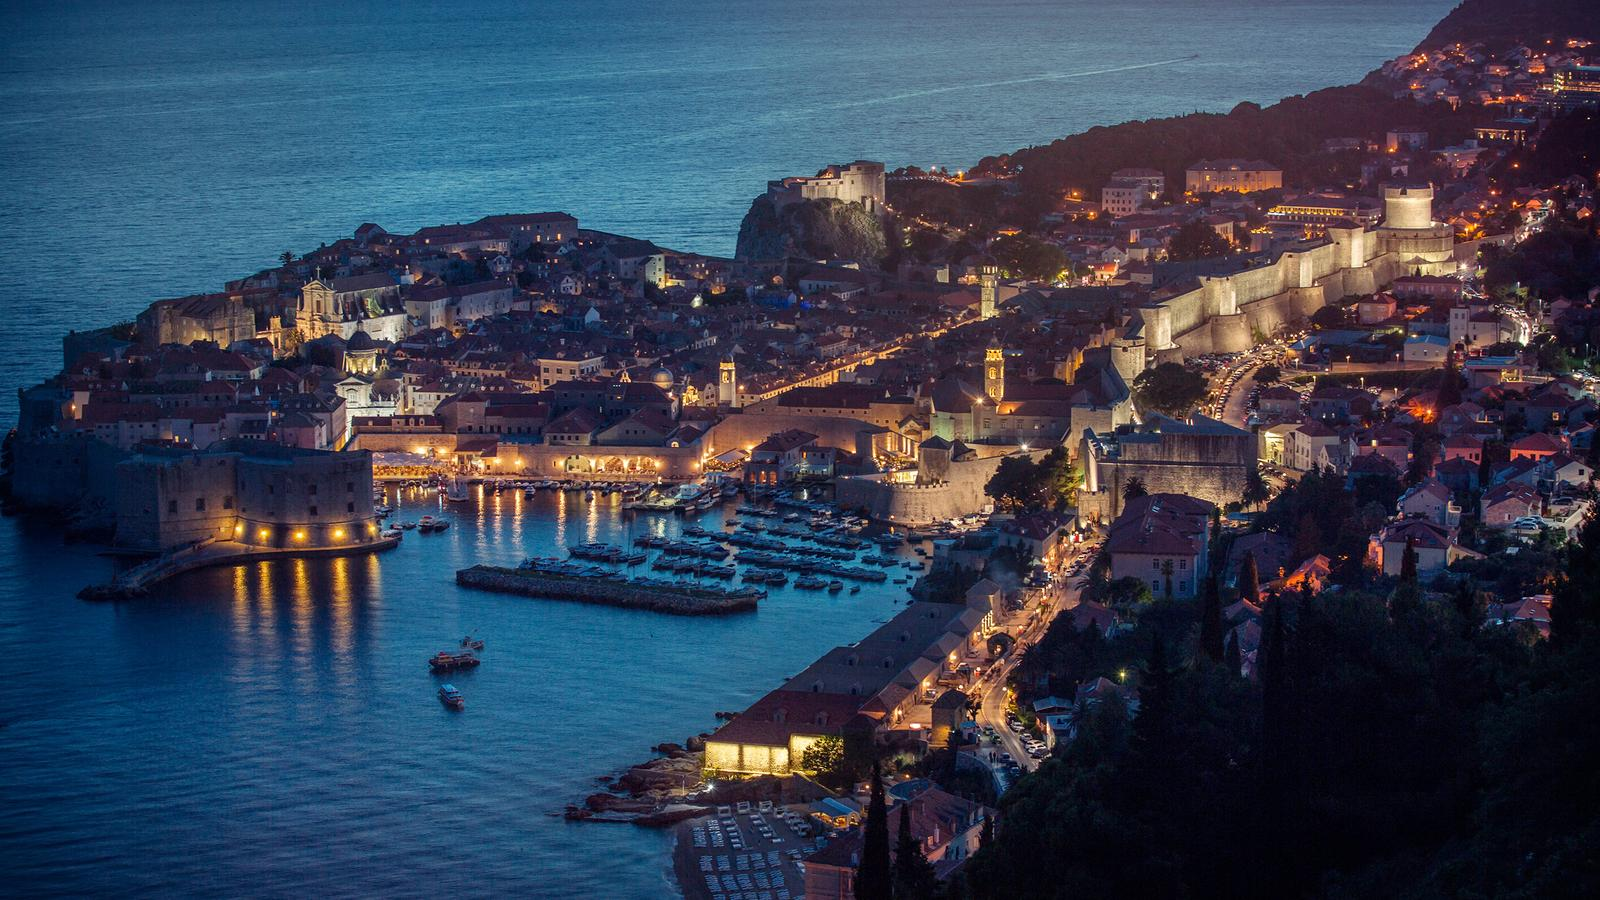 Night time view of Dubrovnik